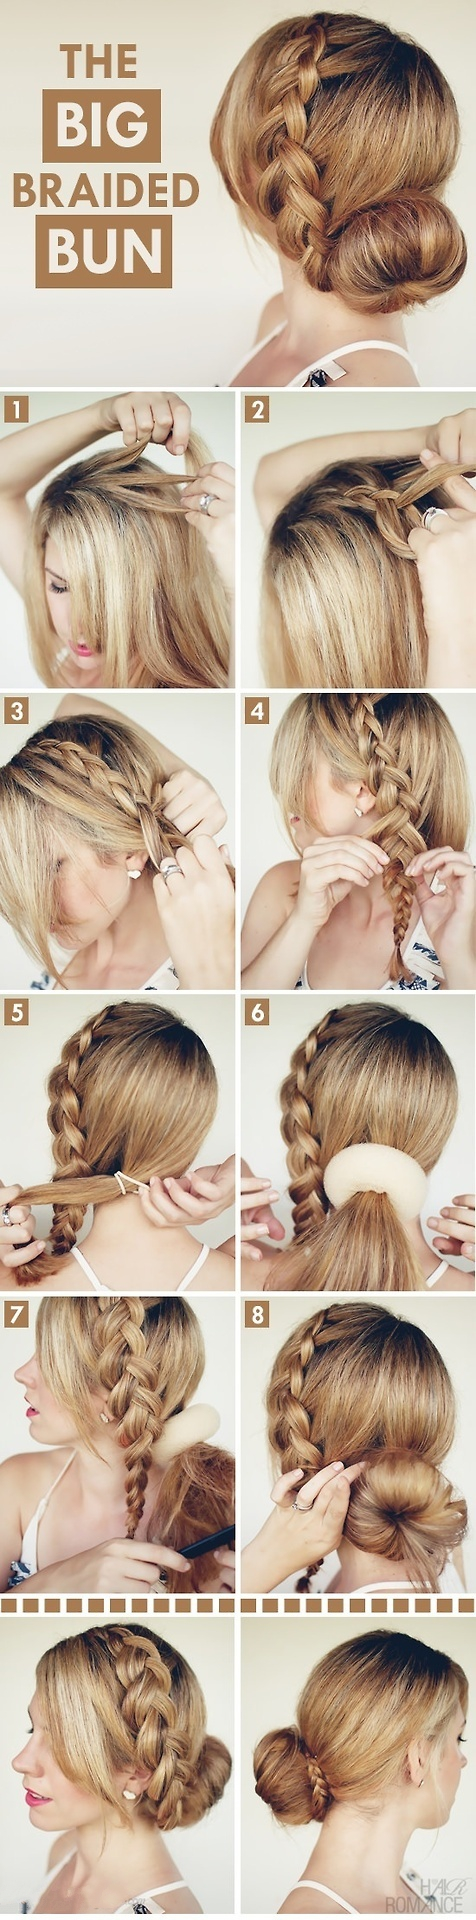 DIY Unique Braided Bun Hairstyle Tutorial